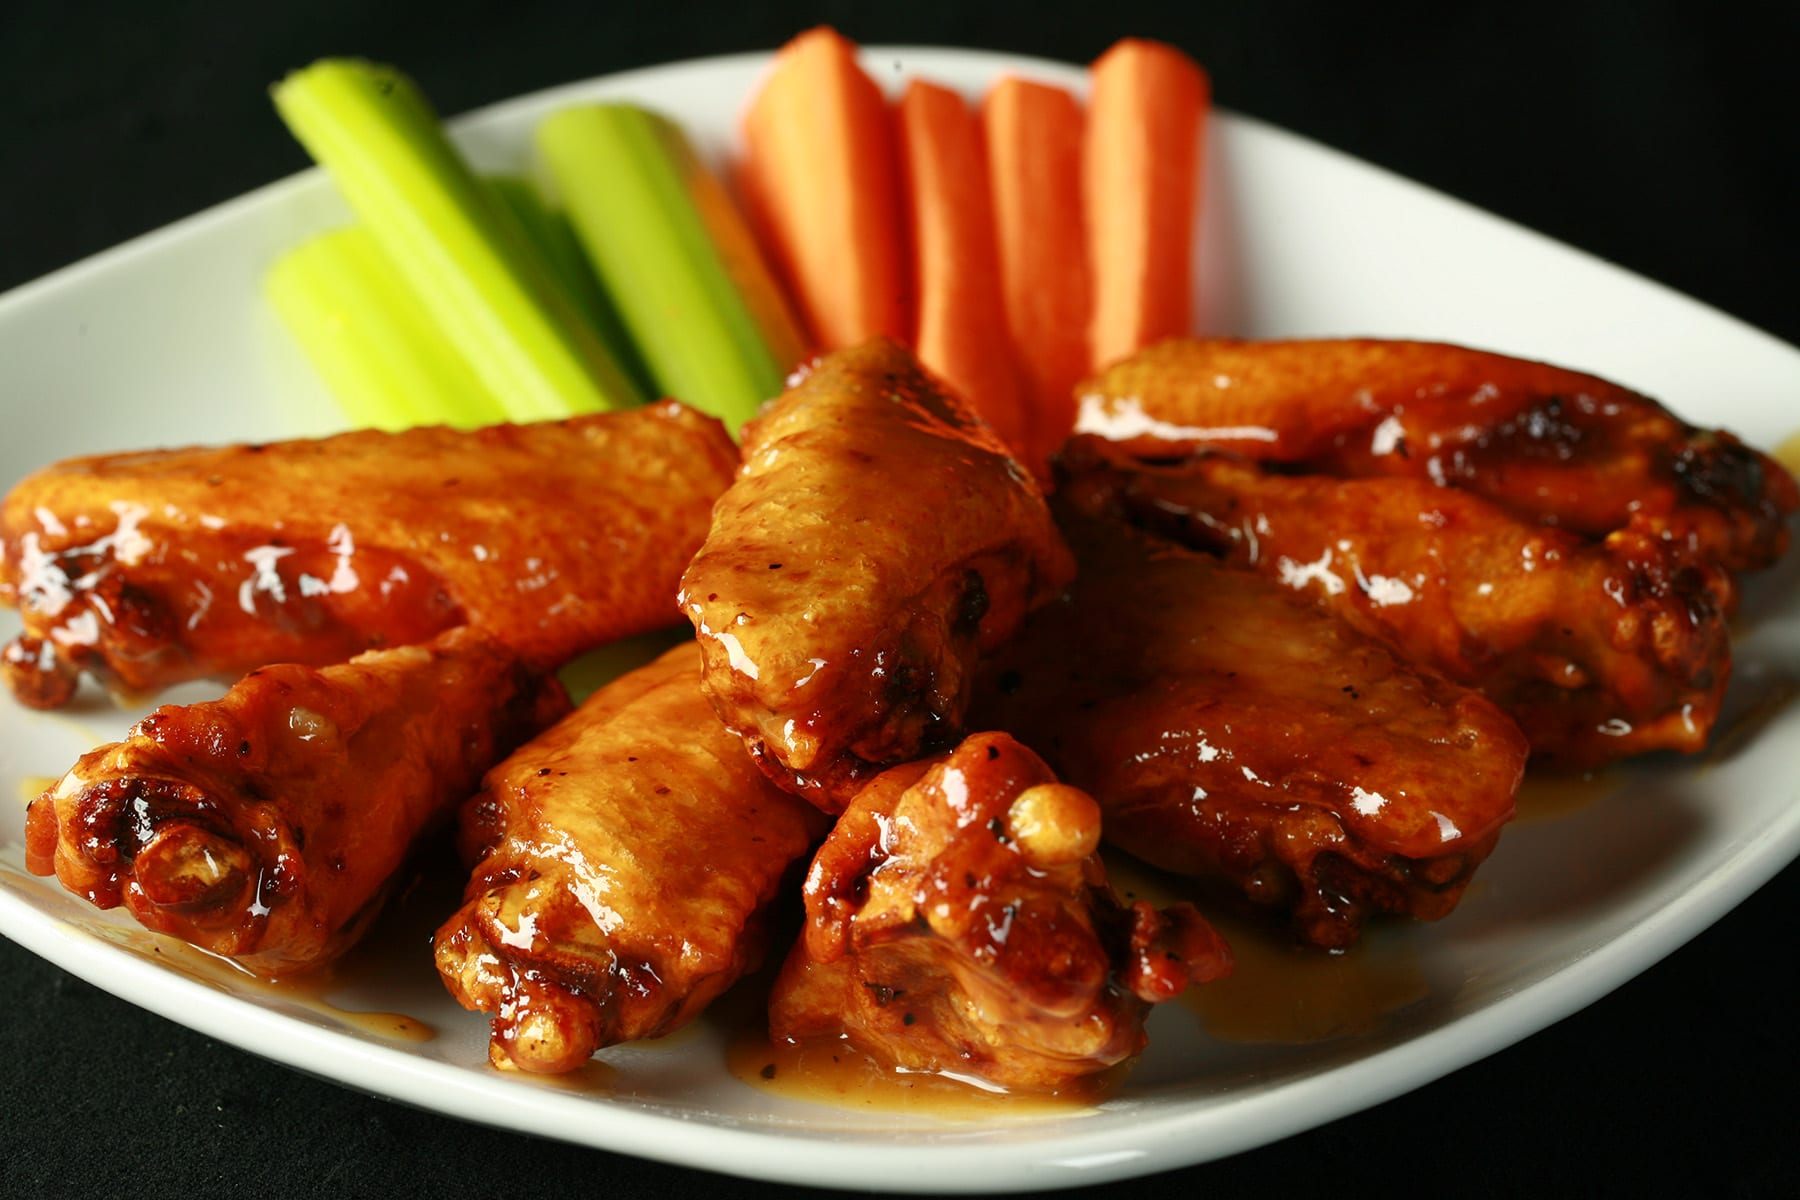 A small white plate with a pile of Whisky Honey Mustard Wings piled on it, celery and carrot sticks on the side.